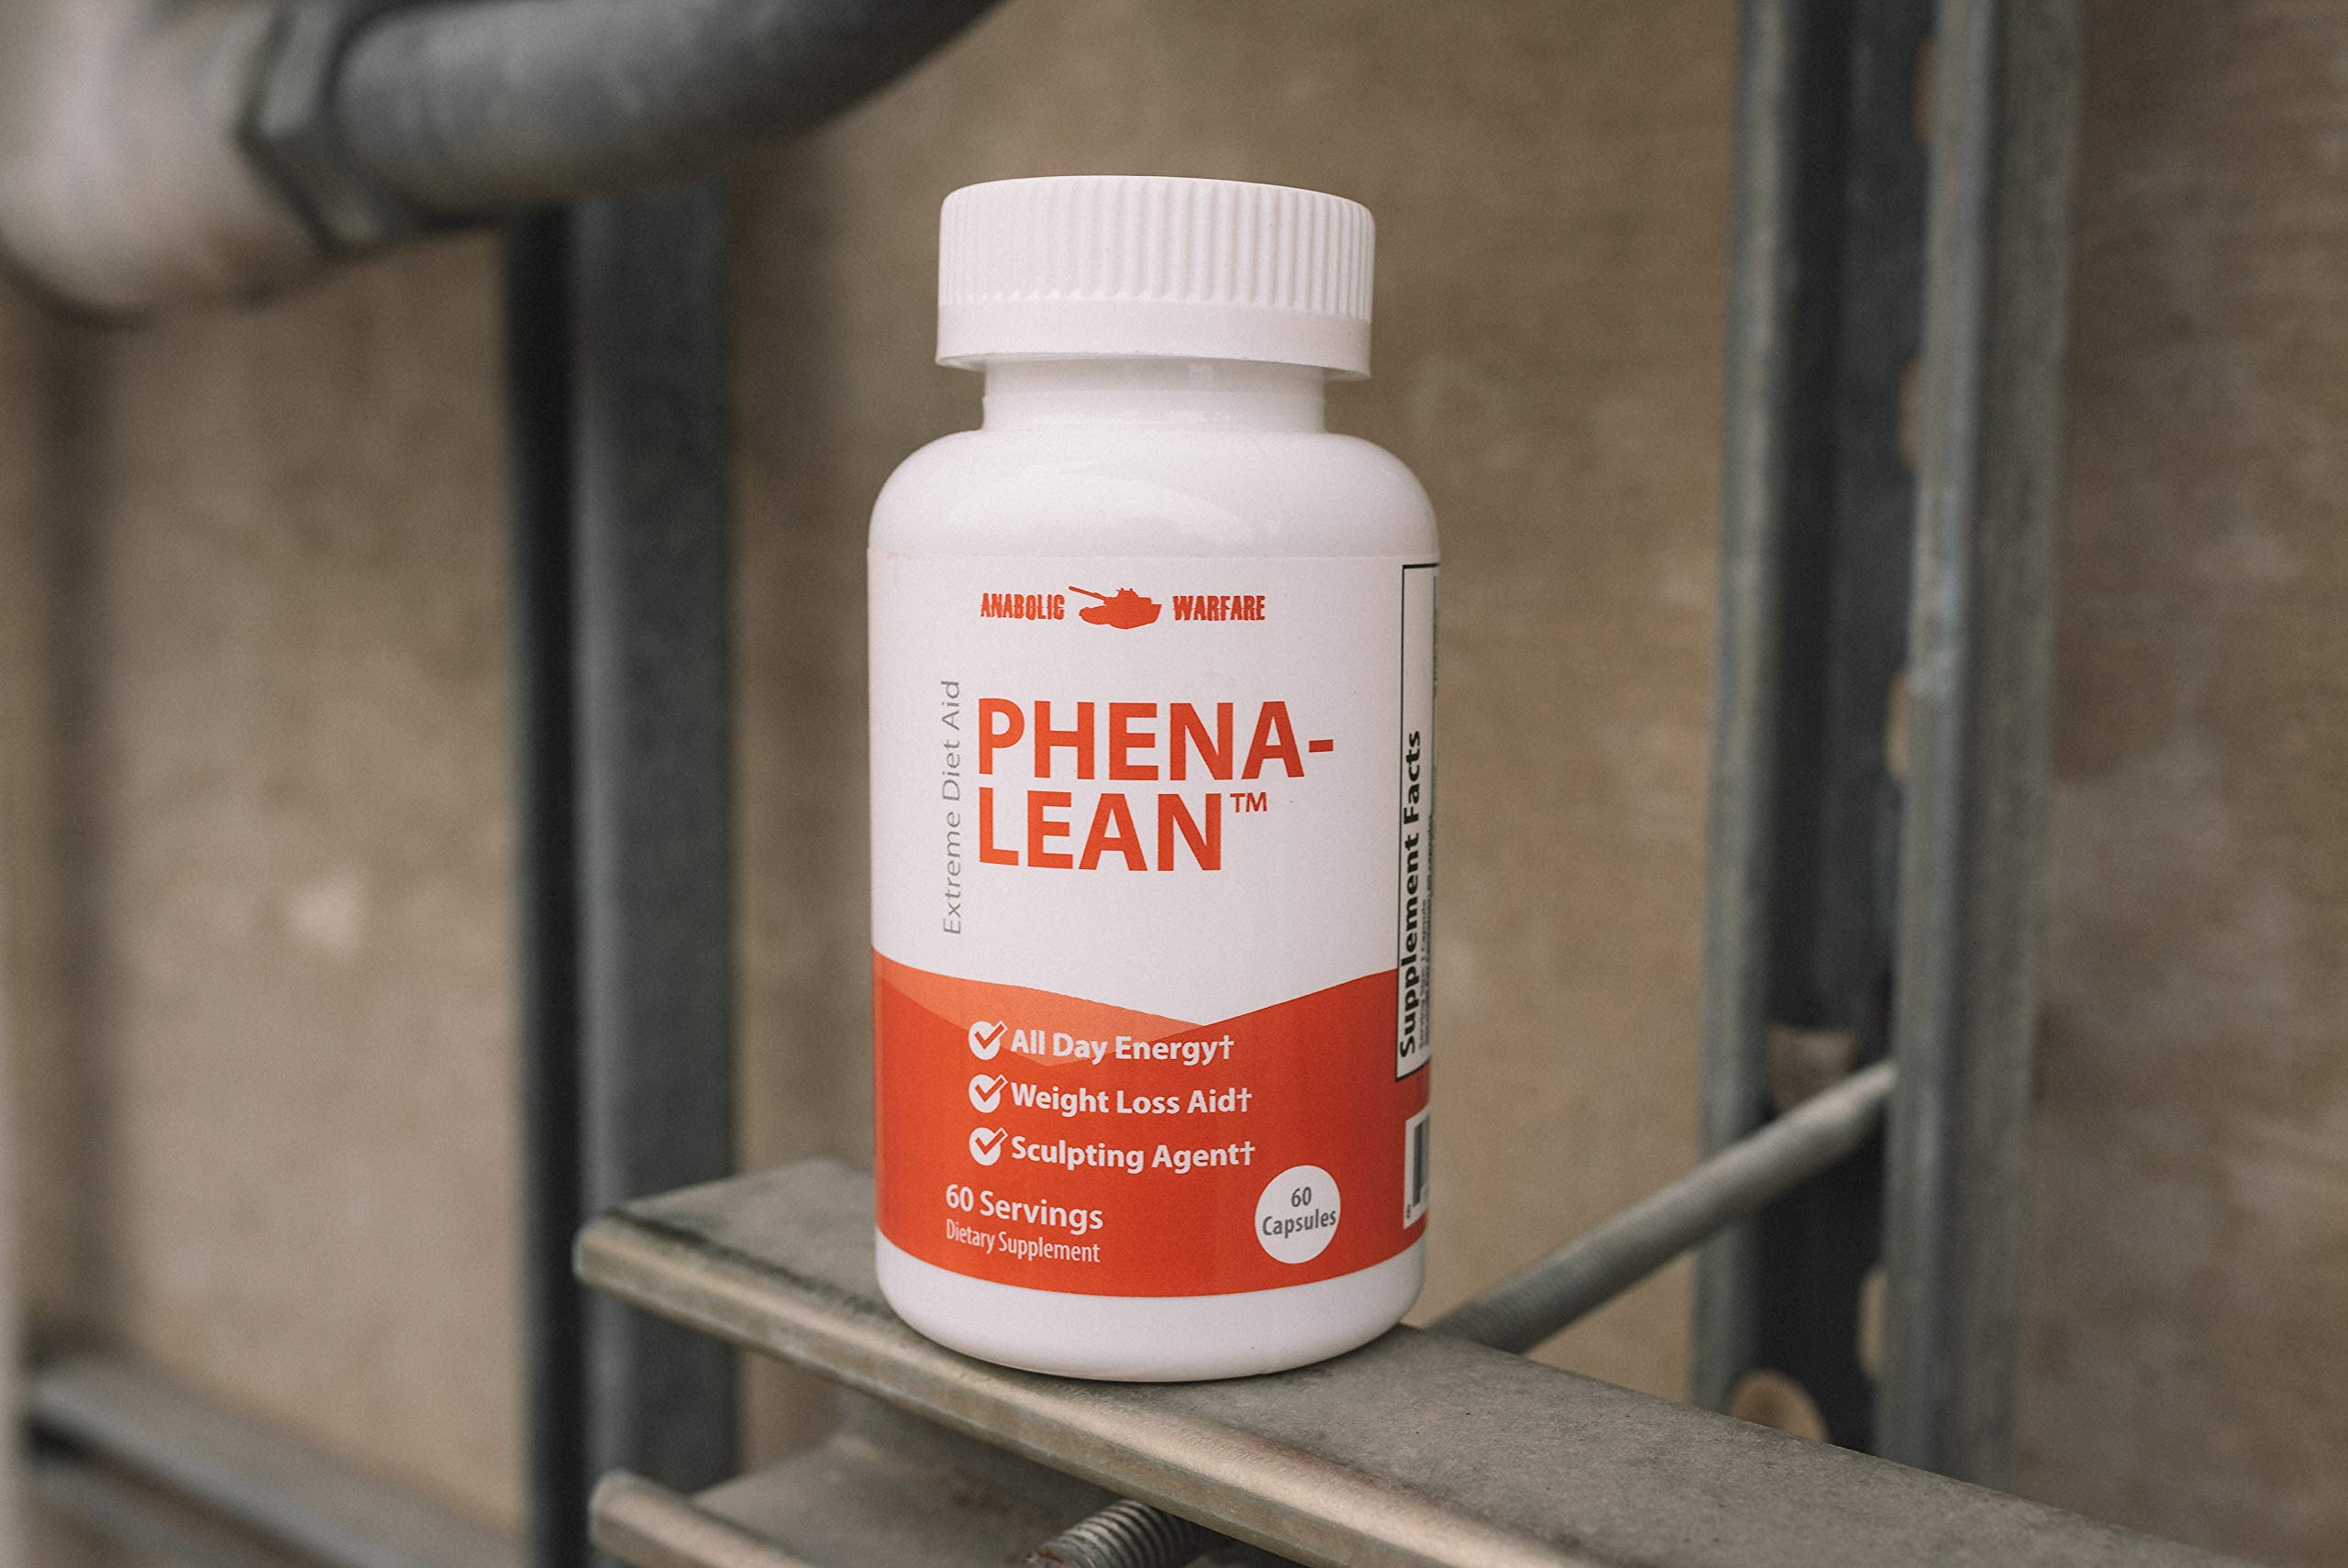 Phena-Lean Thermogenic Fat Burner Supplement by Anabolic Warfare - Aids Weight Loss Efforts, Boosts Energy and Focus (60 Capsules) by Anabolic Warfare (Image #3)